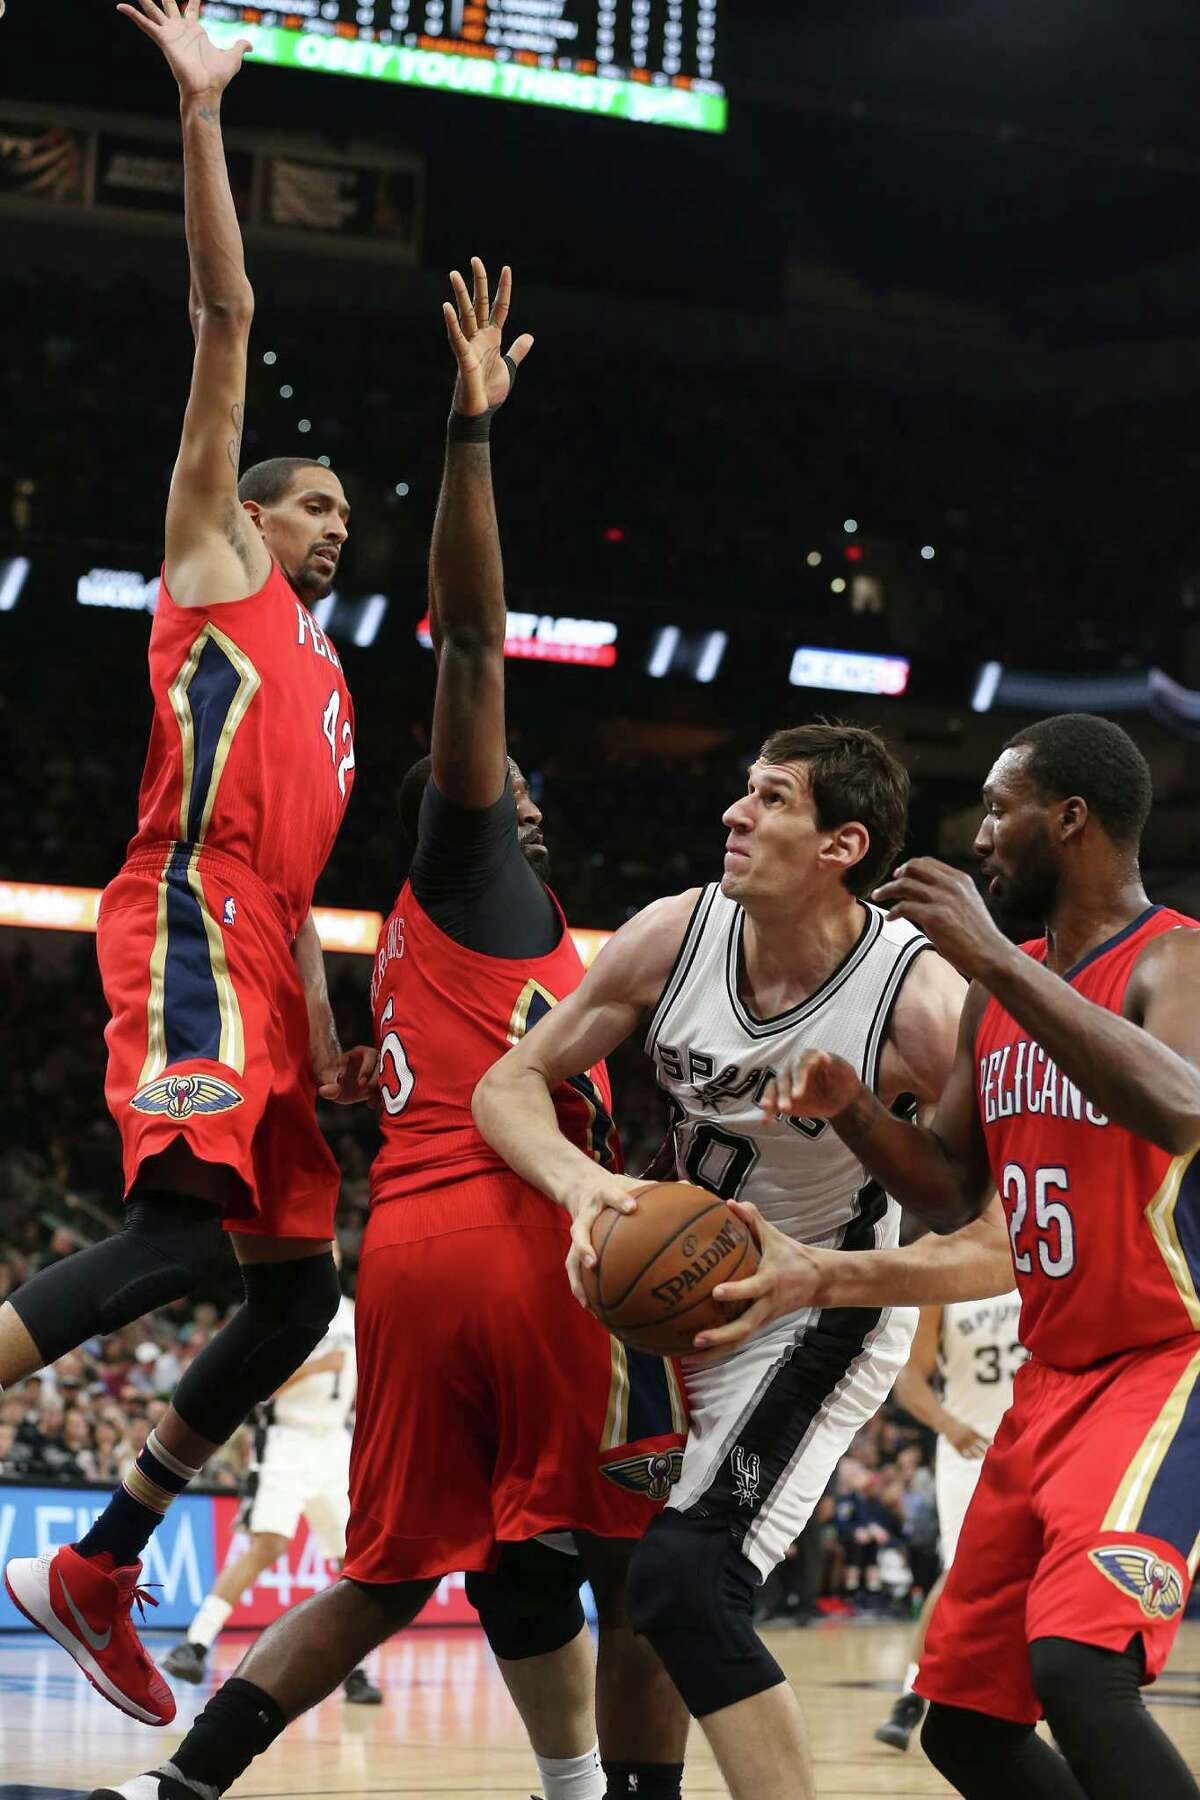 San Antonio Spurs' Boban Marjanovic looks to get through New Orleans Pelicans' Alexis Ajinca, from left, Kendrick Perkins and Jordan Hamilton during the first half at the AT&T Center, Wednesday, March 30, 2016.